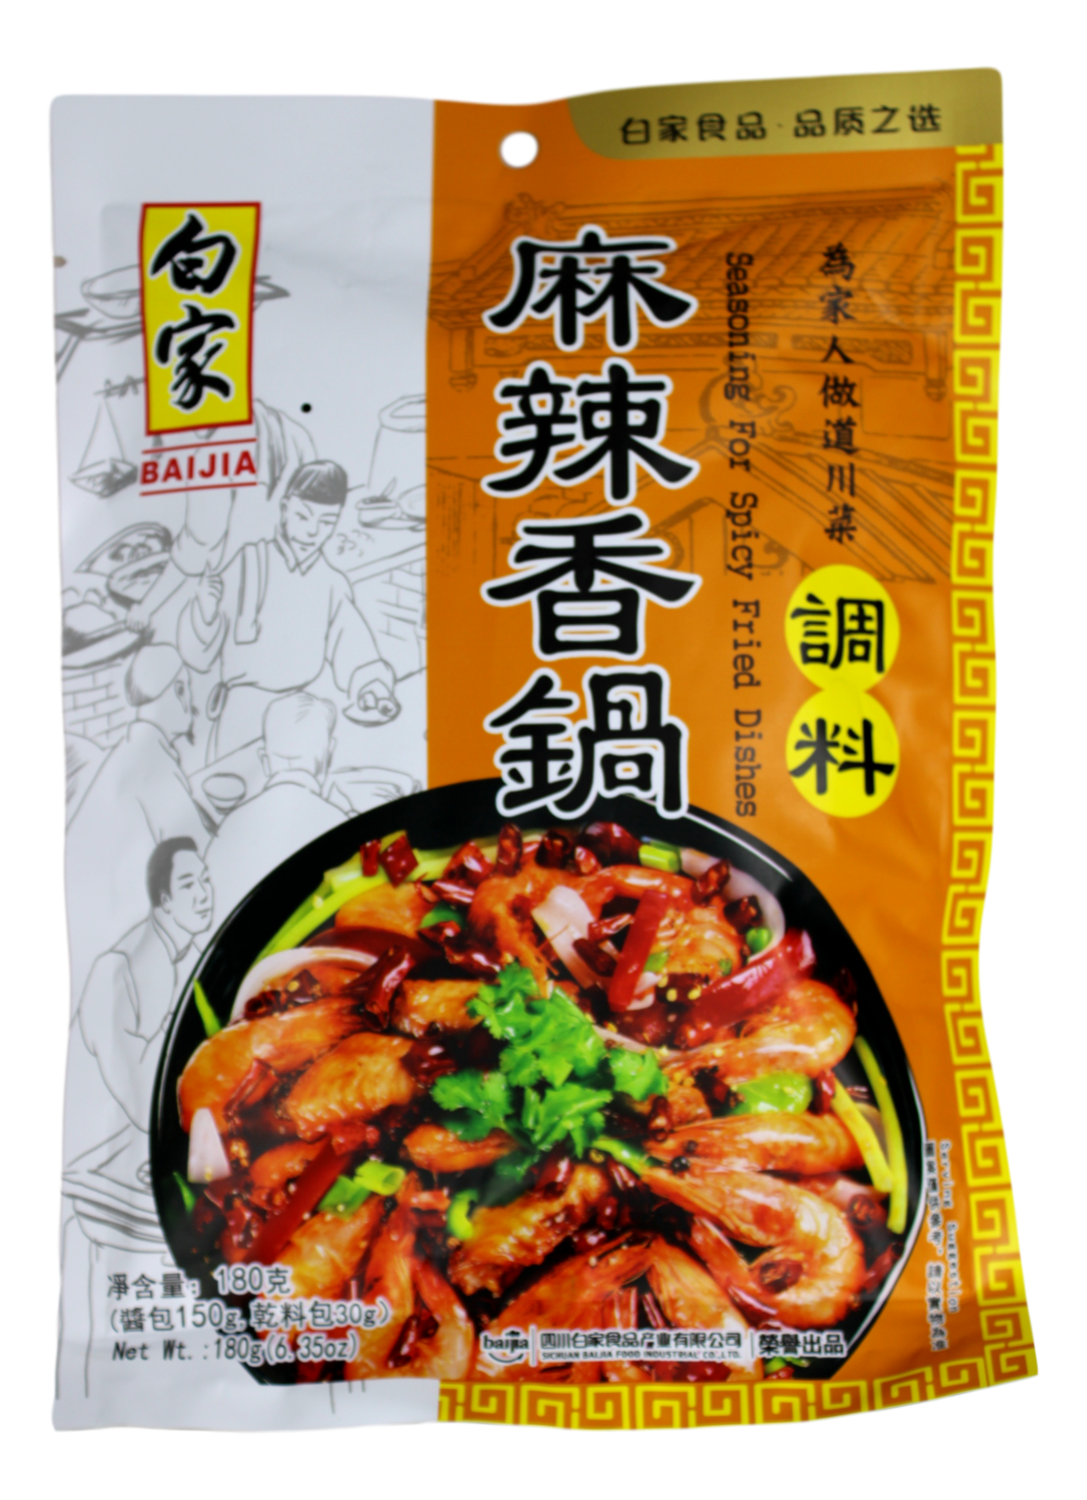 BAIJIA SEASONING FOR SPICY FRIED DISHES 白家 麻辣香锅调料(180G)